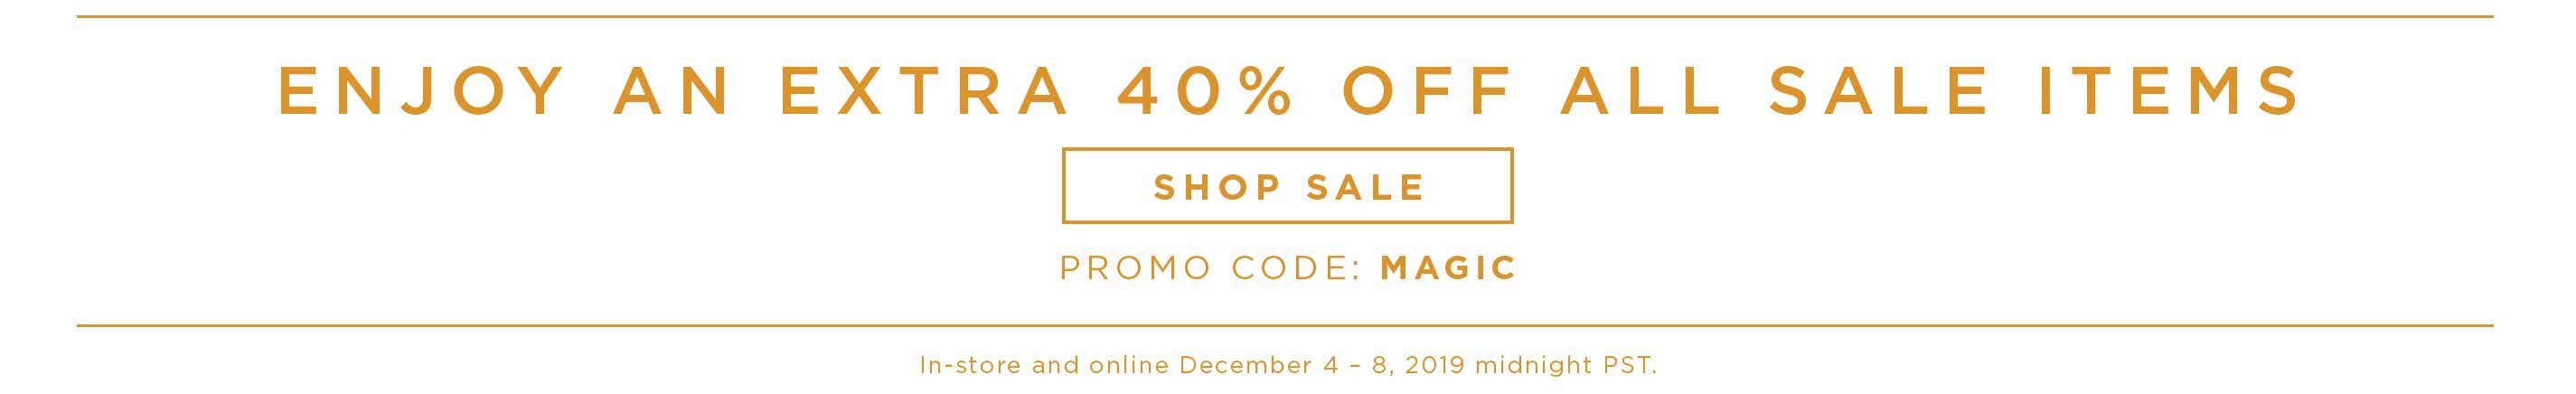 Enjoy an Extra 40% off all Sales Items - Shop Sale - Promo Code: MAGIC - In-store and online December 4 - 8, 2019 midnight PST.